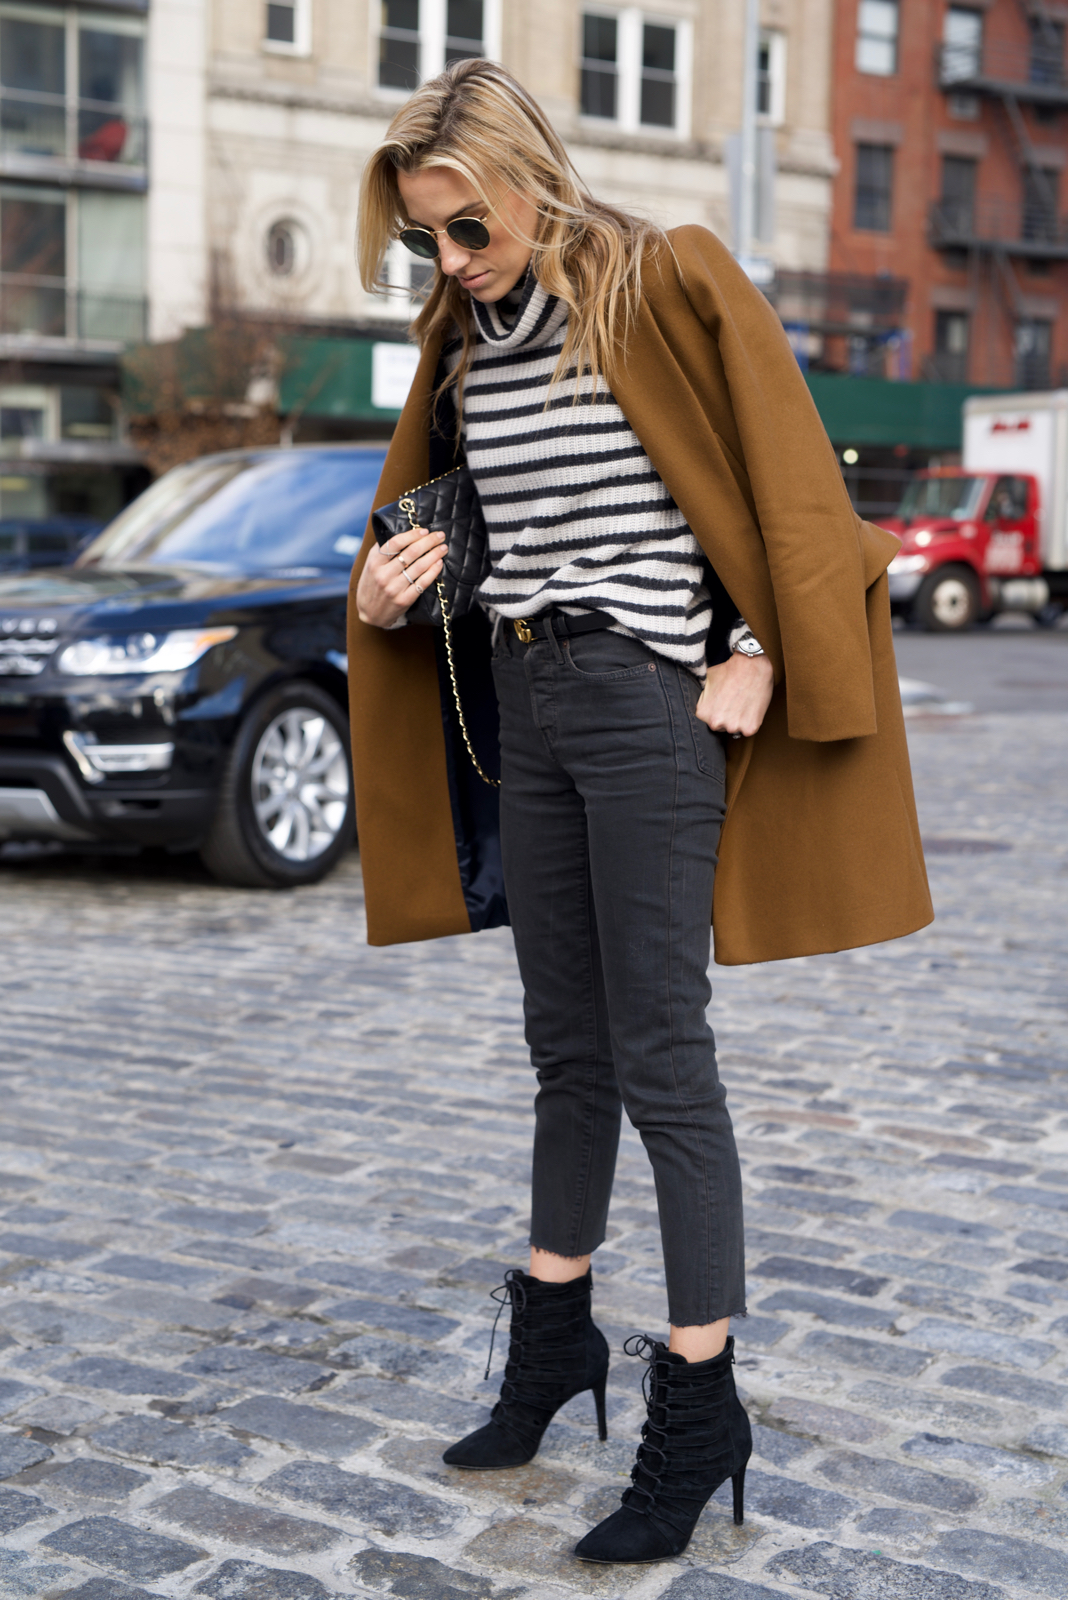 Cashmere Striped Sweater. Levis, Camel Coat, Lace up booties, Ray-Ban, Chanel, Gucci Belt,